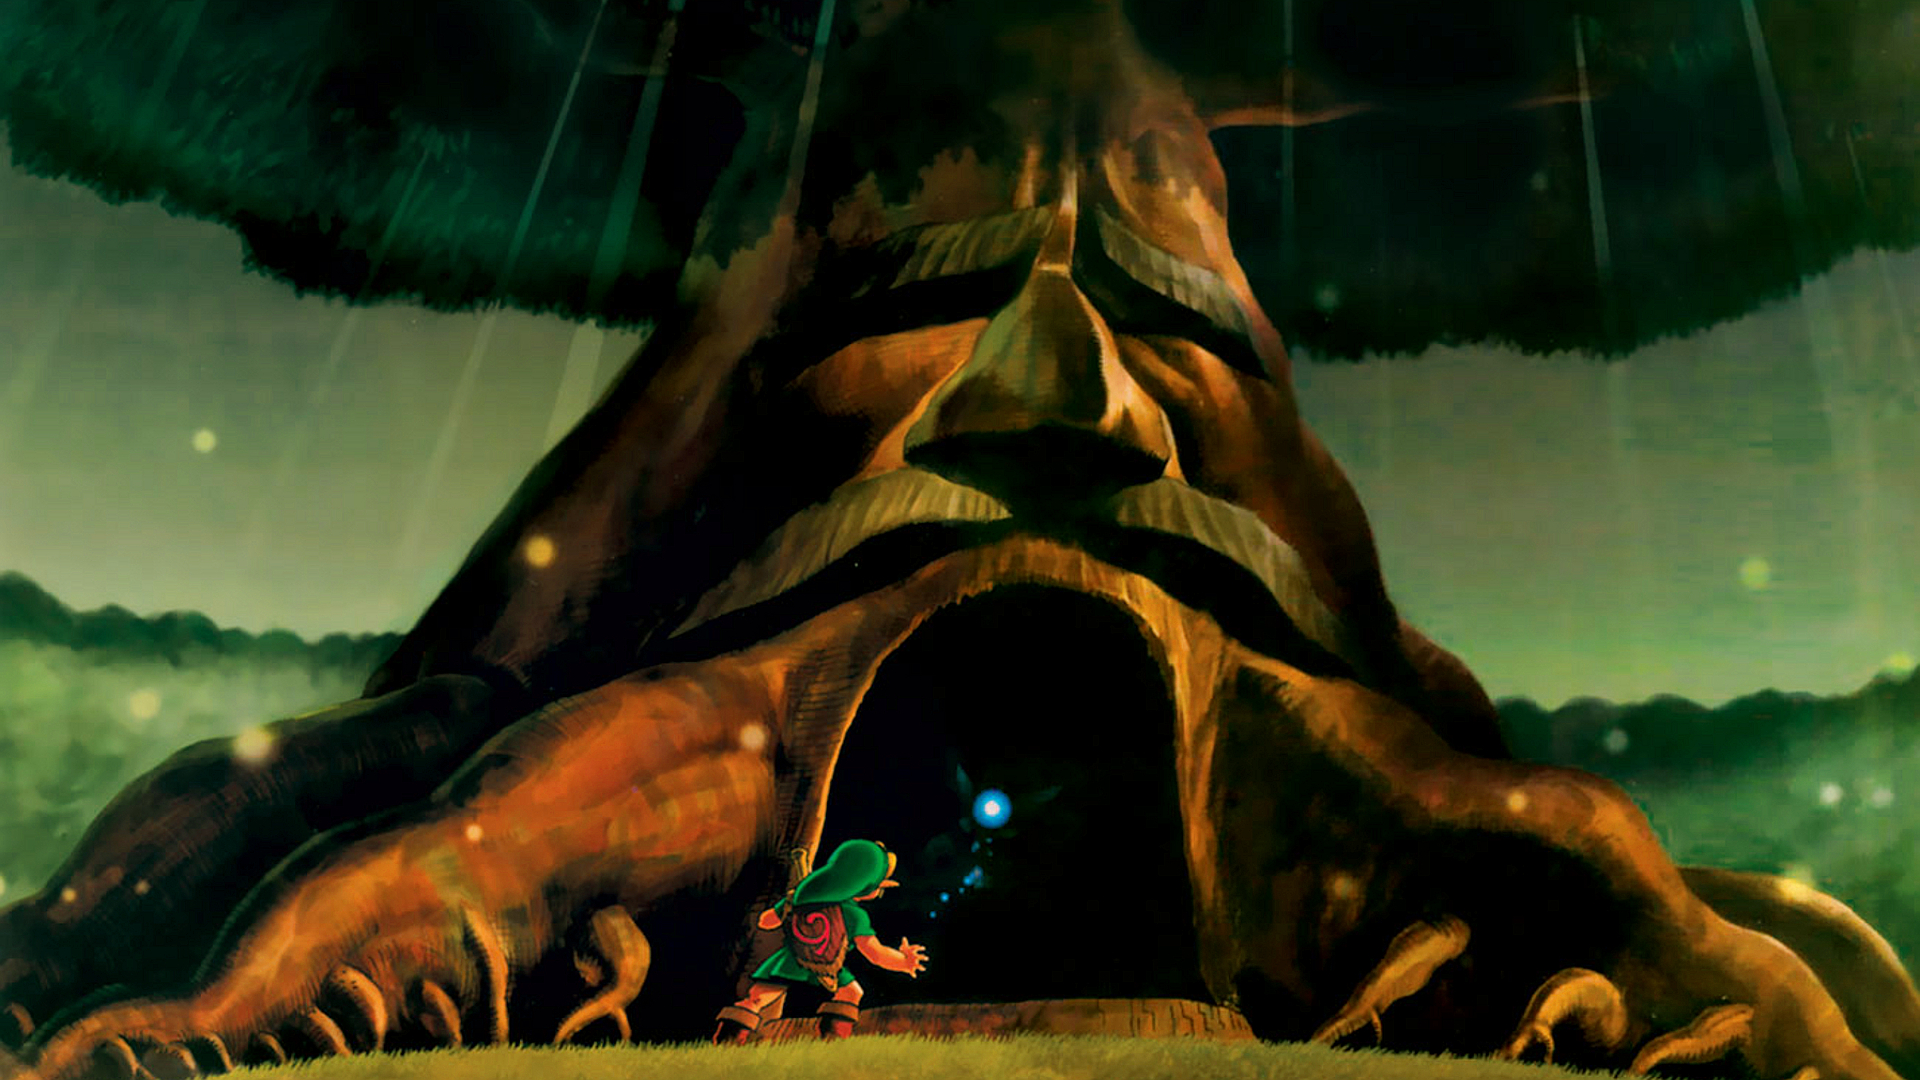 1920x1080 The Legend of Zelda Deku Tree desktop PC and Mac wallpaper 1920x1080